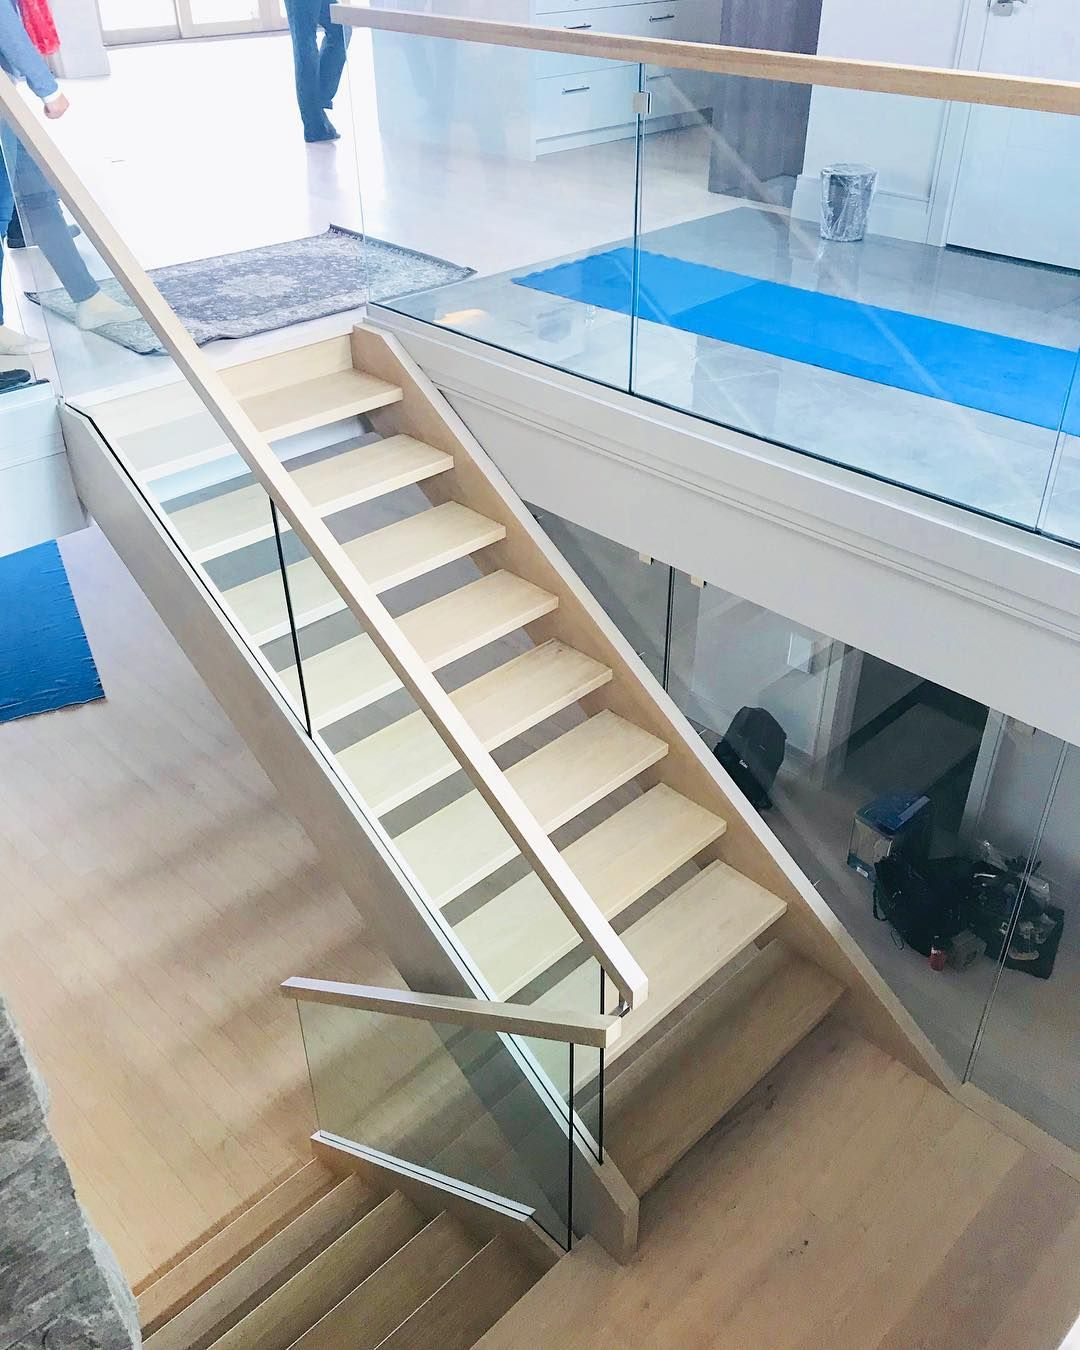 Closed 2 side white oak stairs with built in glass channel. For the level  guards we used the Q-line aluminum engineered base shoe with 12mm glass.